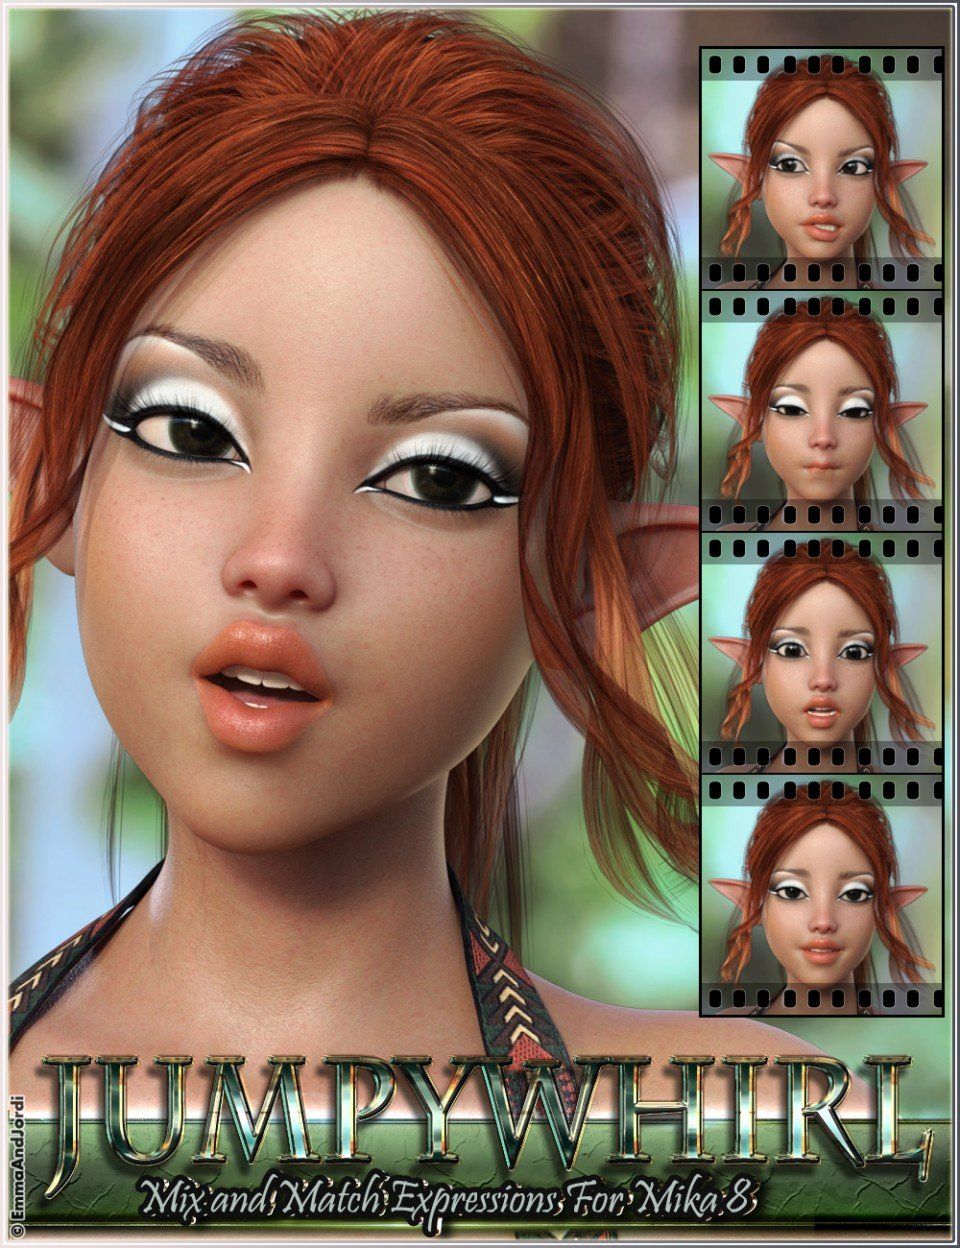 Jumpywhirl Mix and Match Expressions for Mika 8 And Genesis 8 Female(s)_DAZ3D下载站